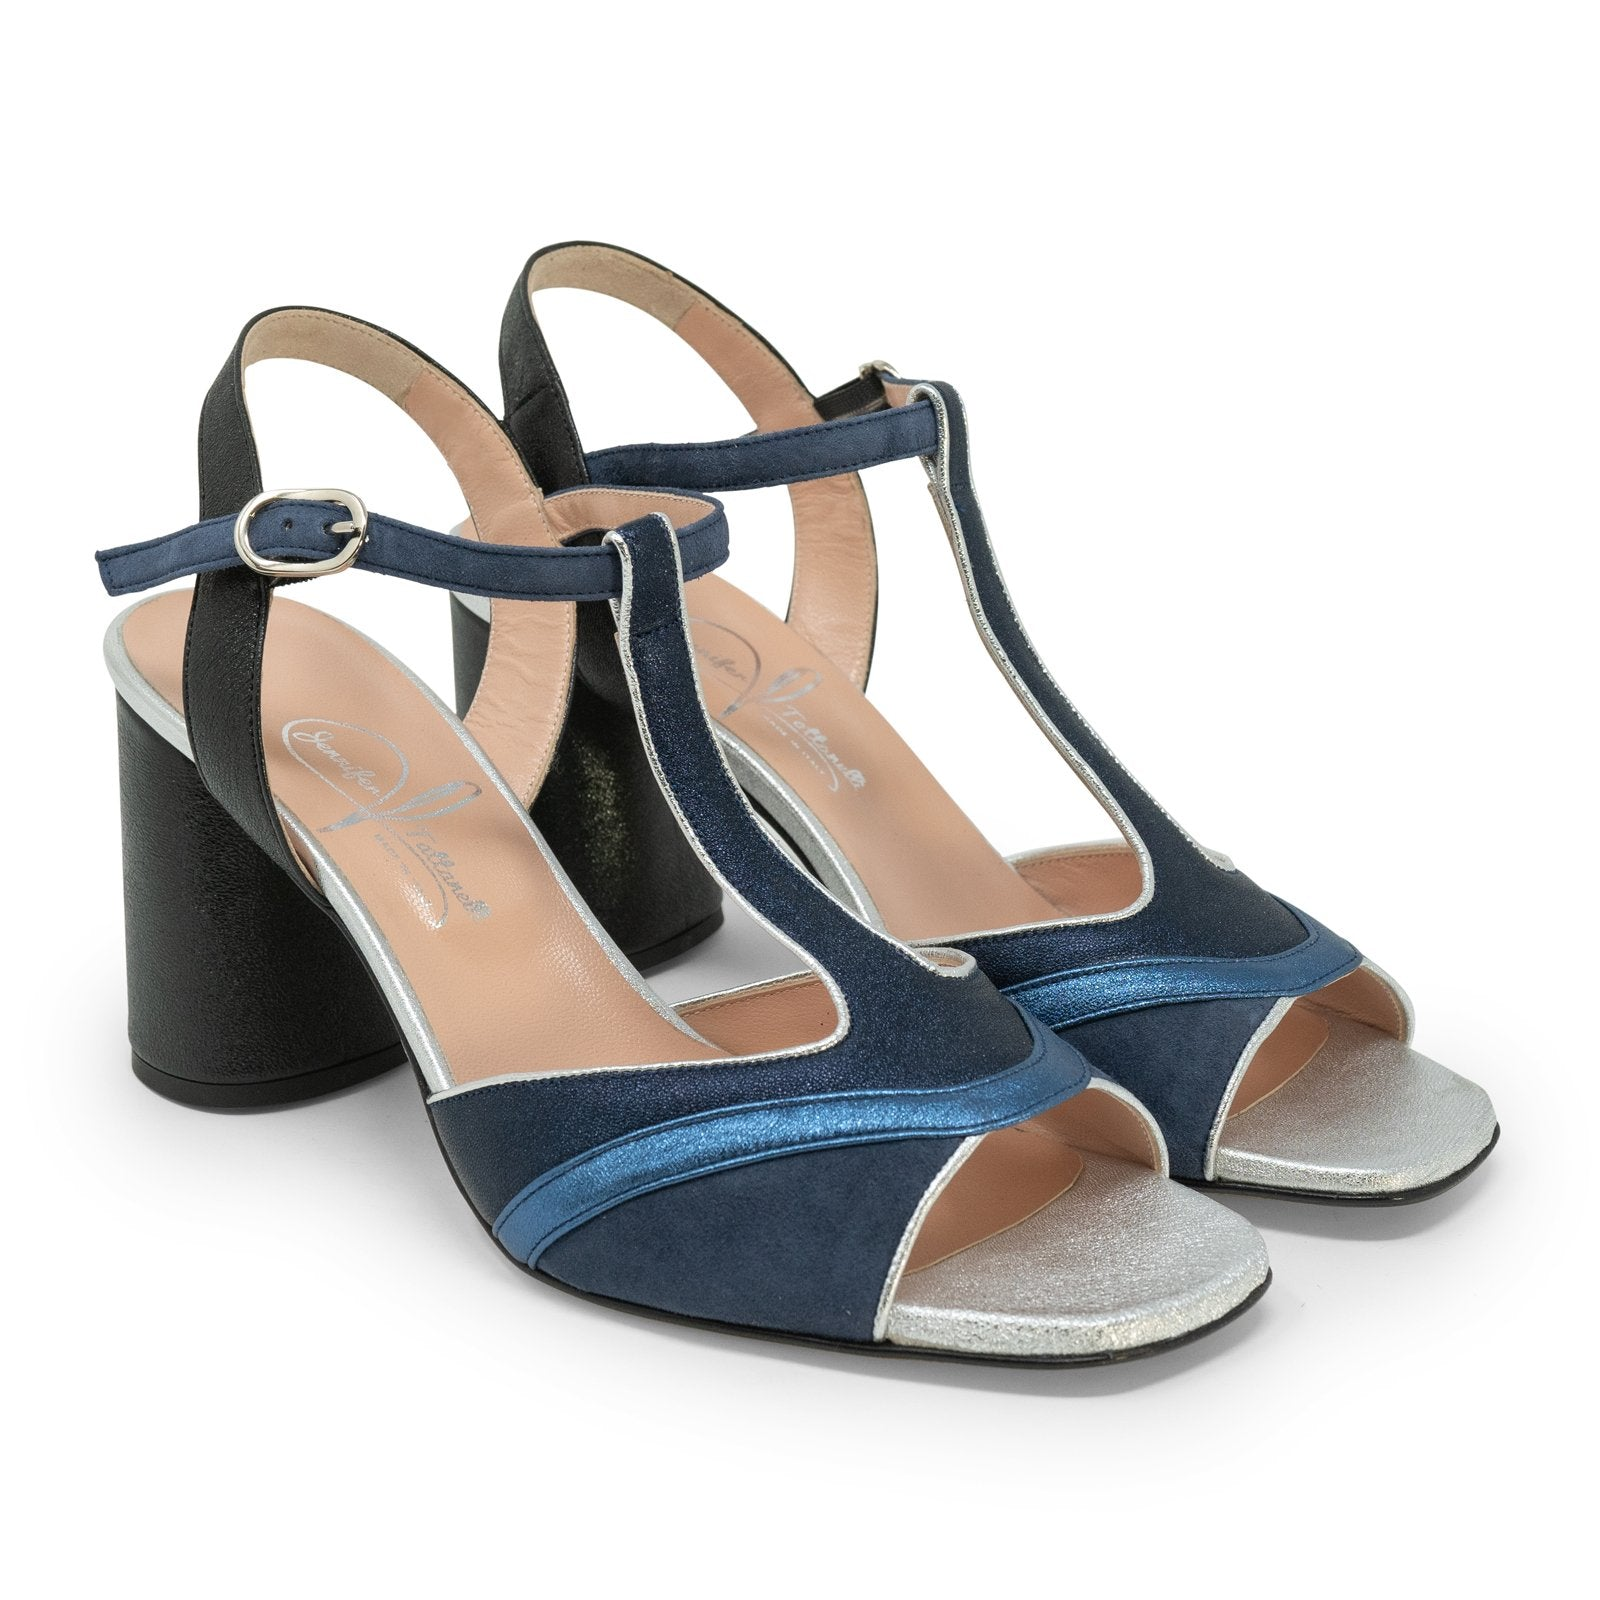 Women High Heel Block Sandals in Blue - Jennifer Tattanelli